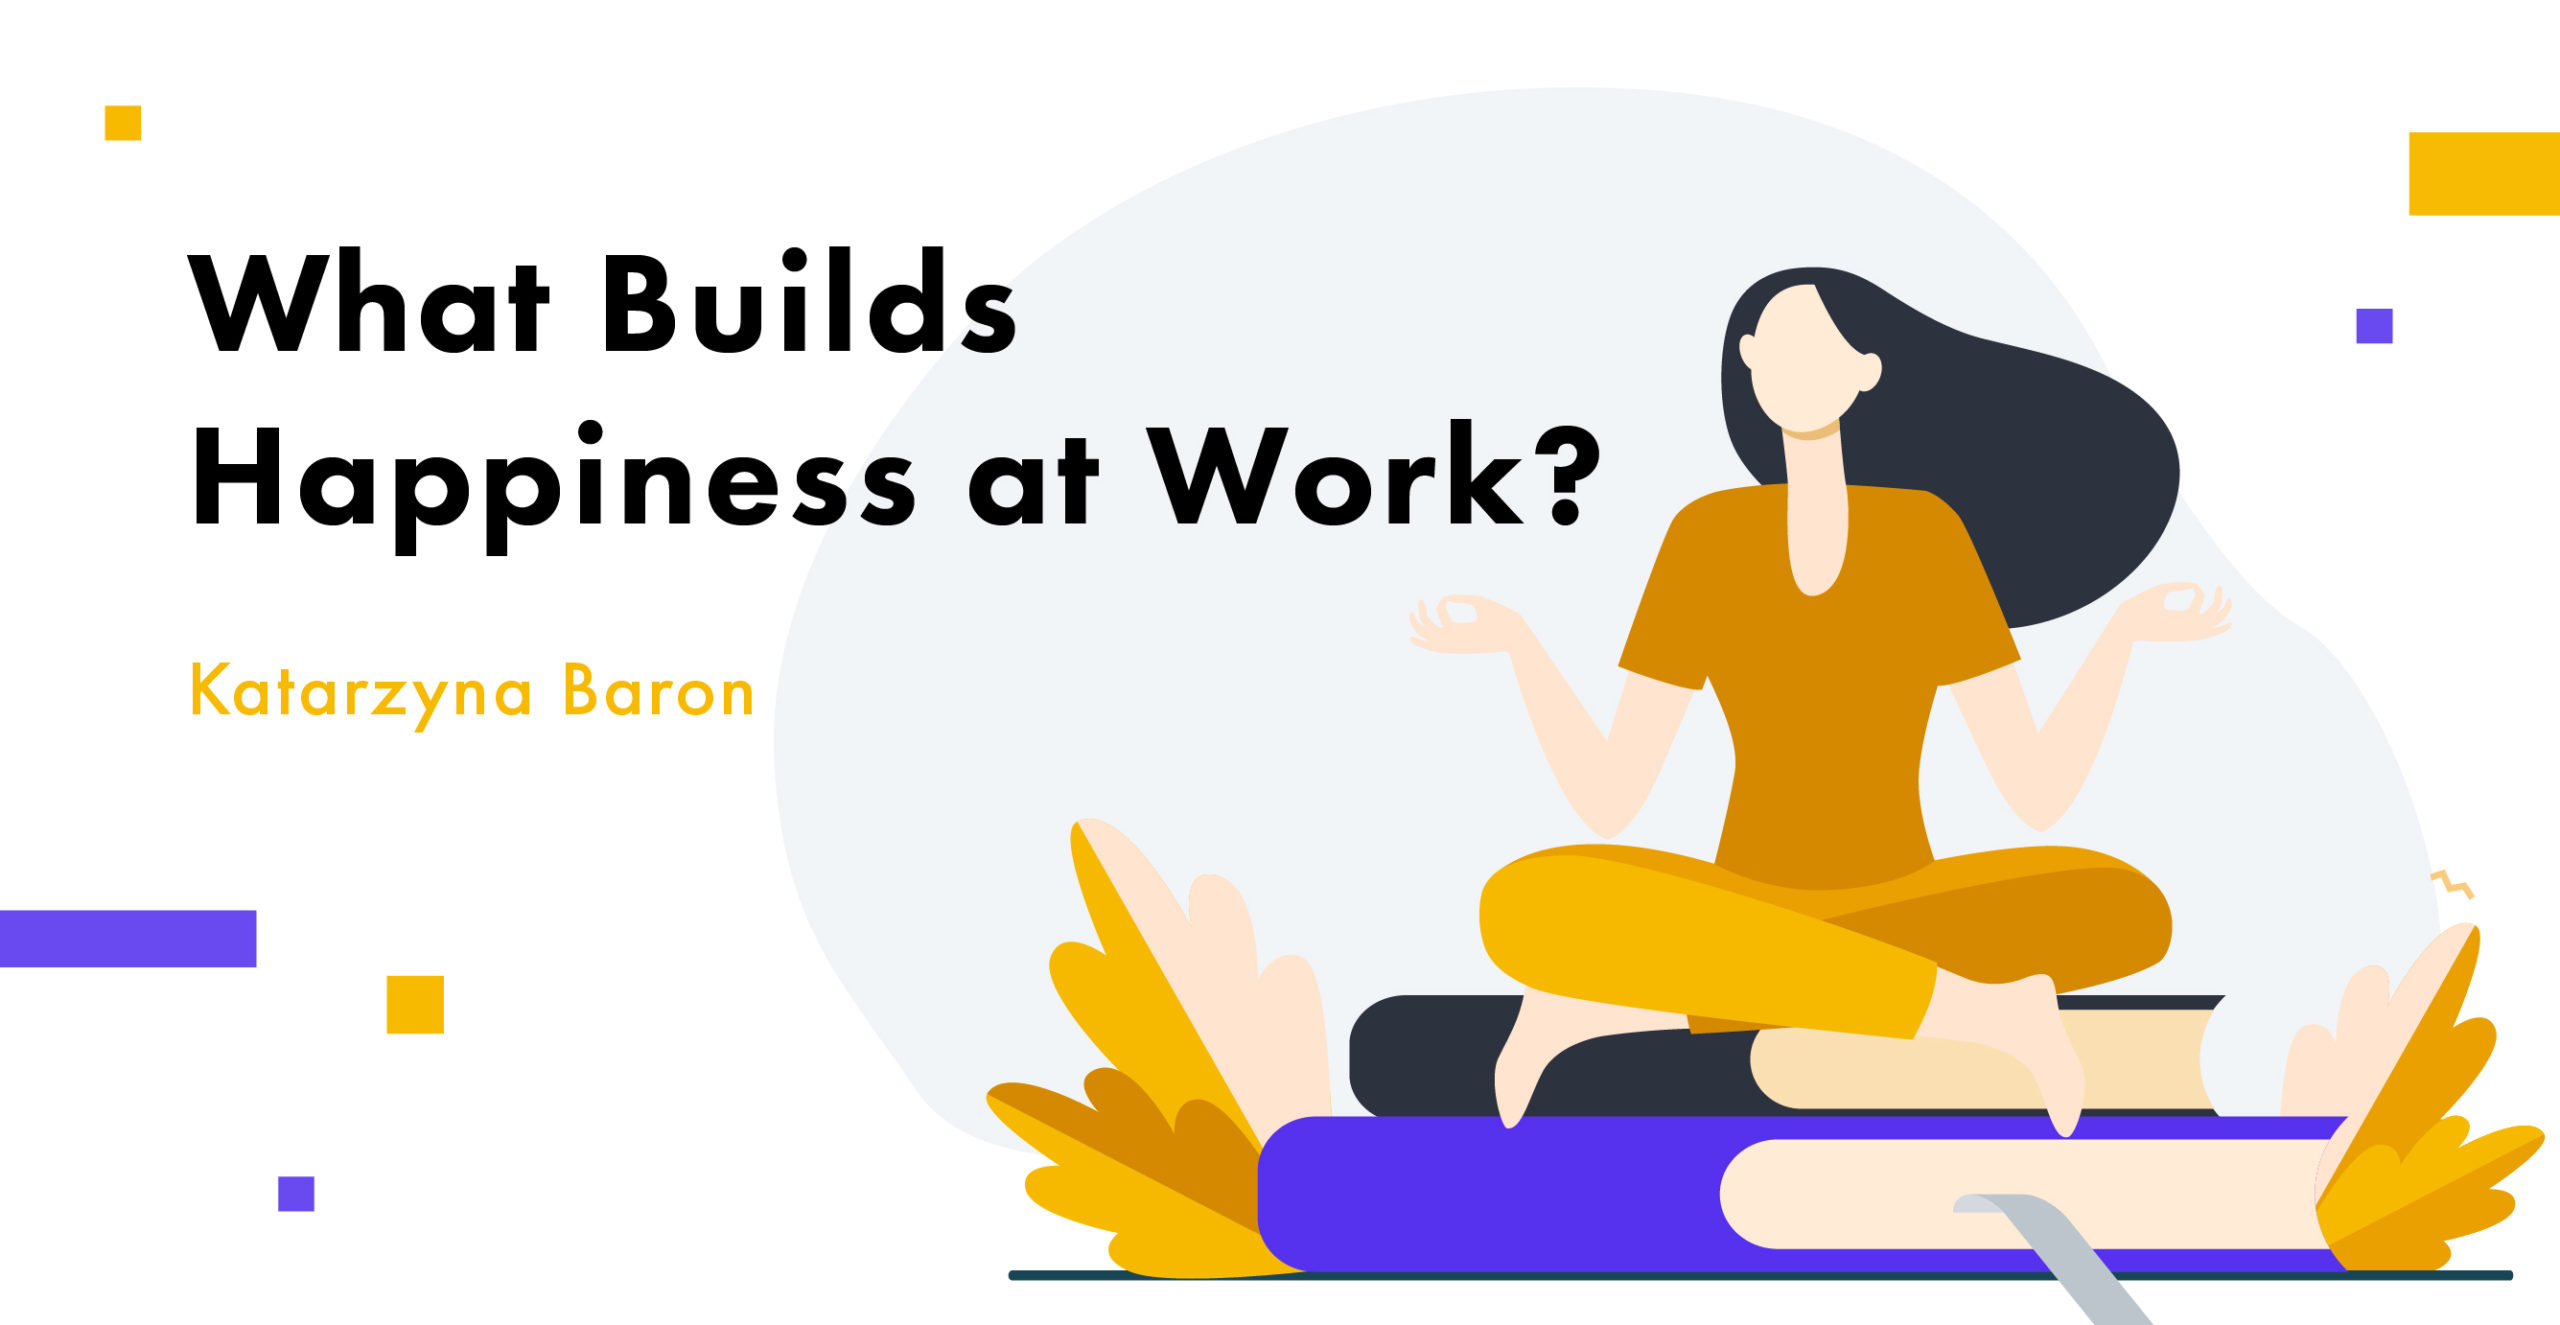 What builds happuness at work